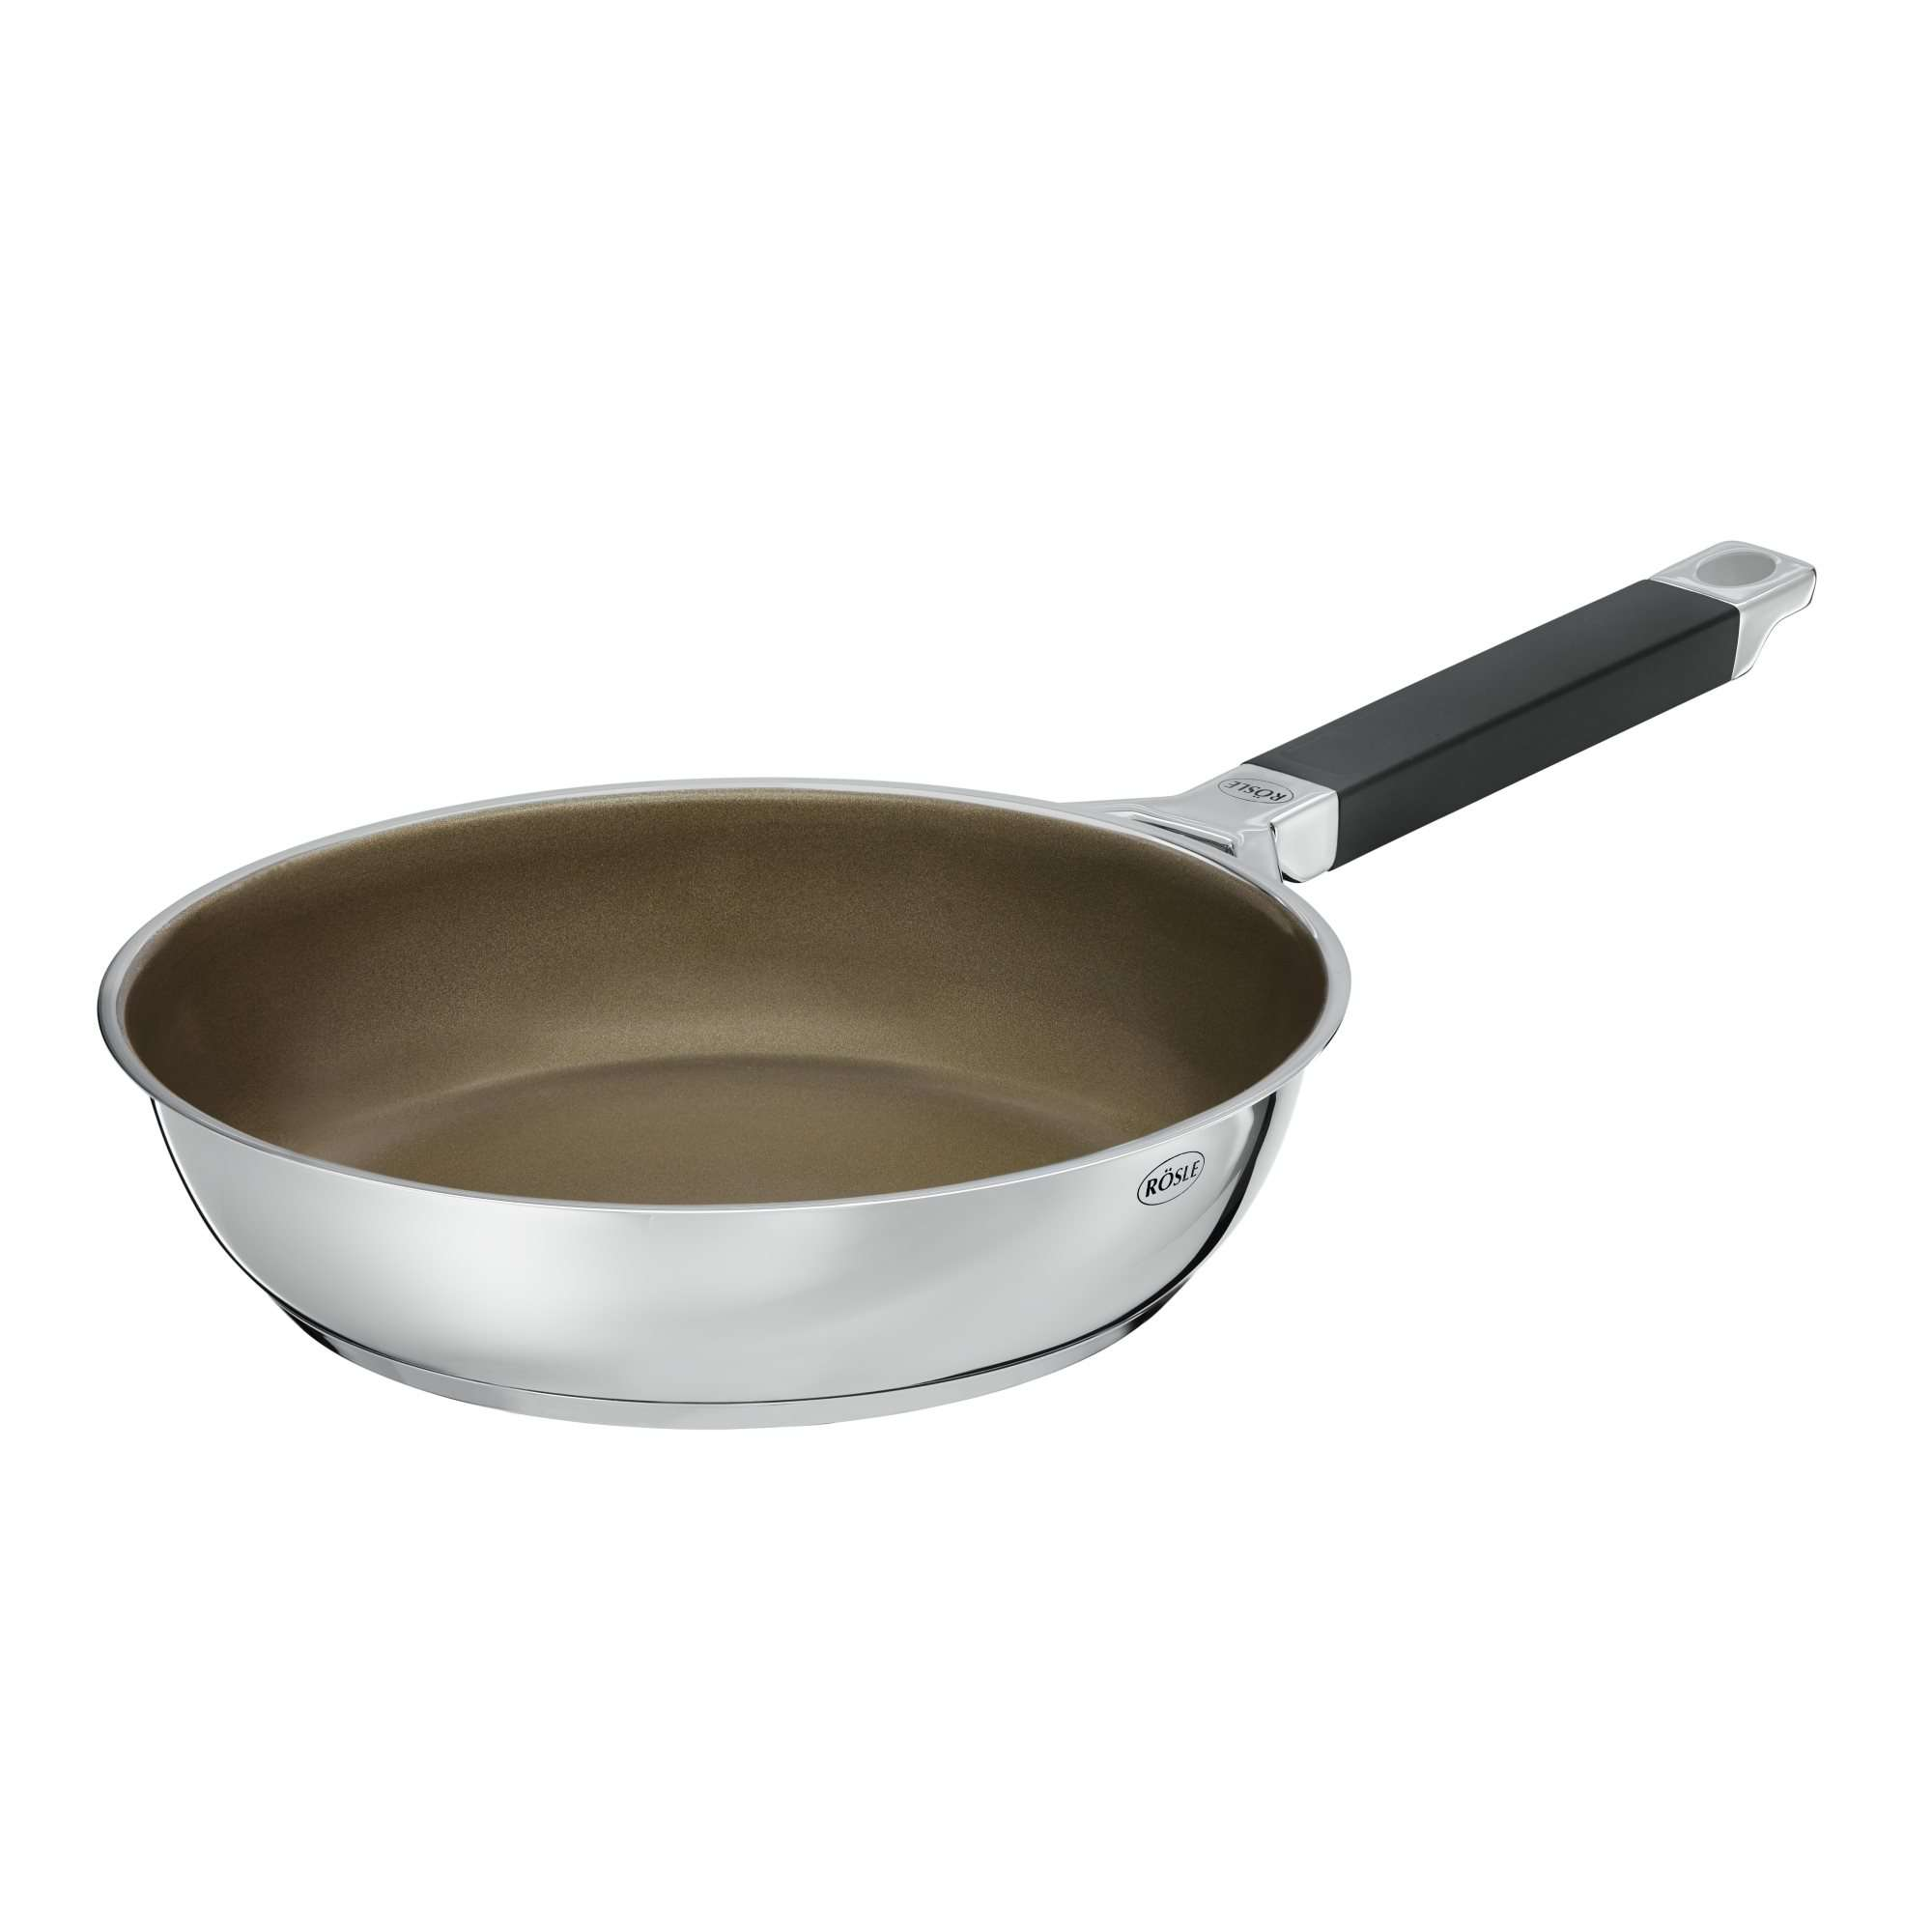 Rösle Küchensieb RÖsle Silence Series Frying Pan 24 Cm Stainless Steel With Non Stick Coating